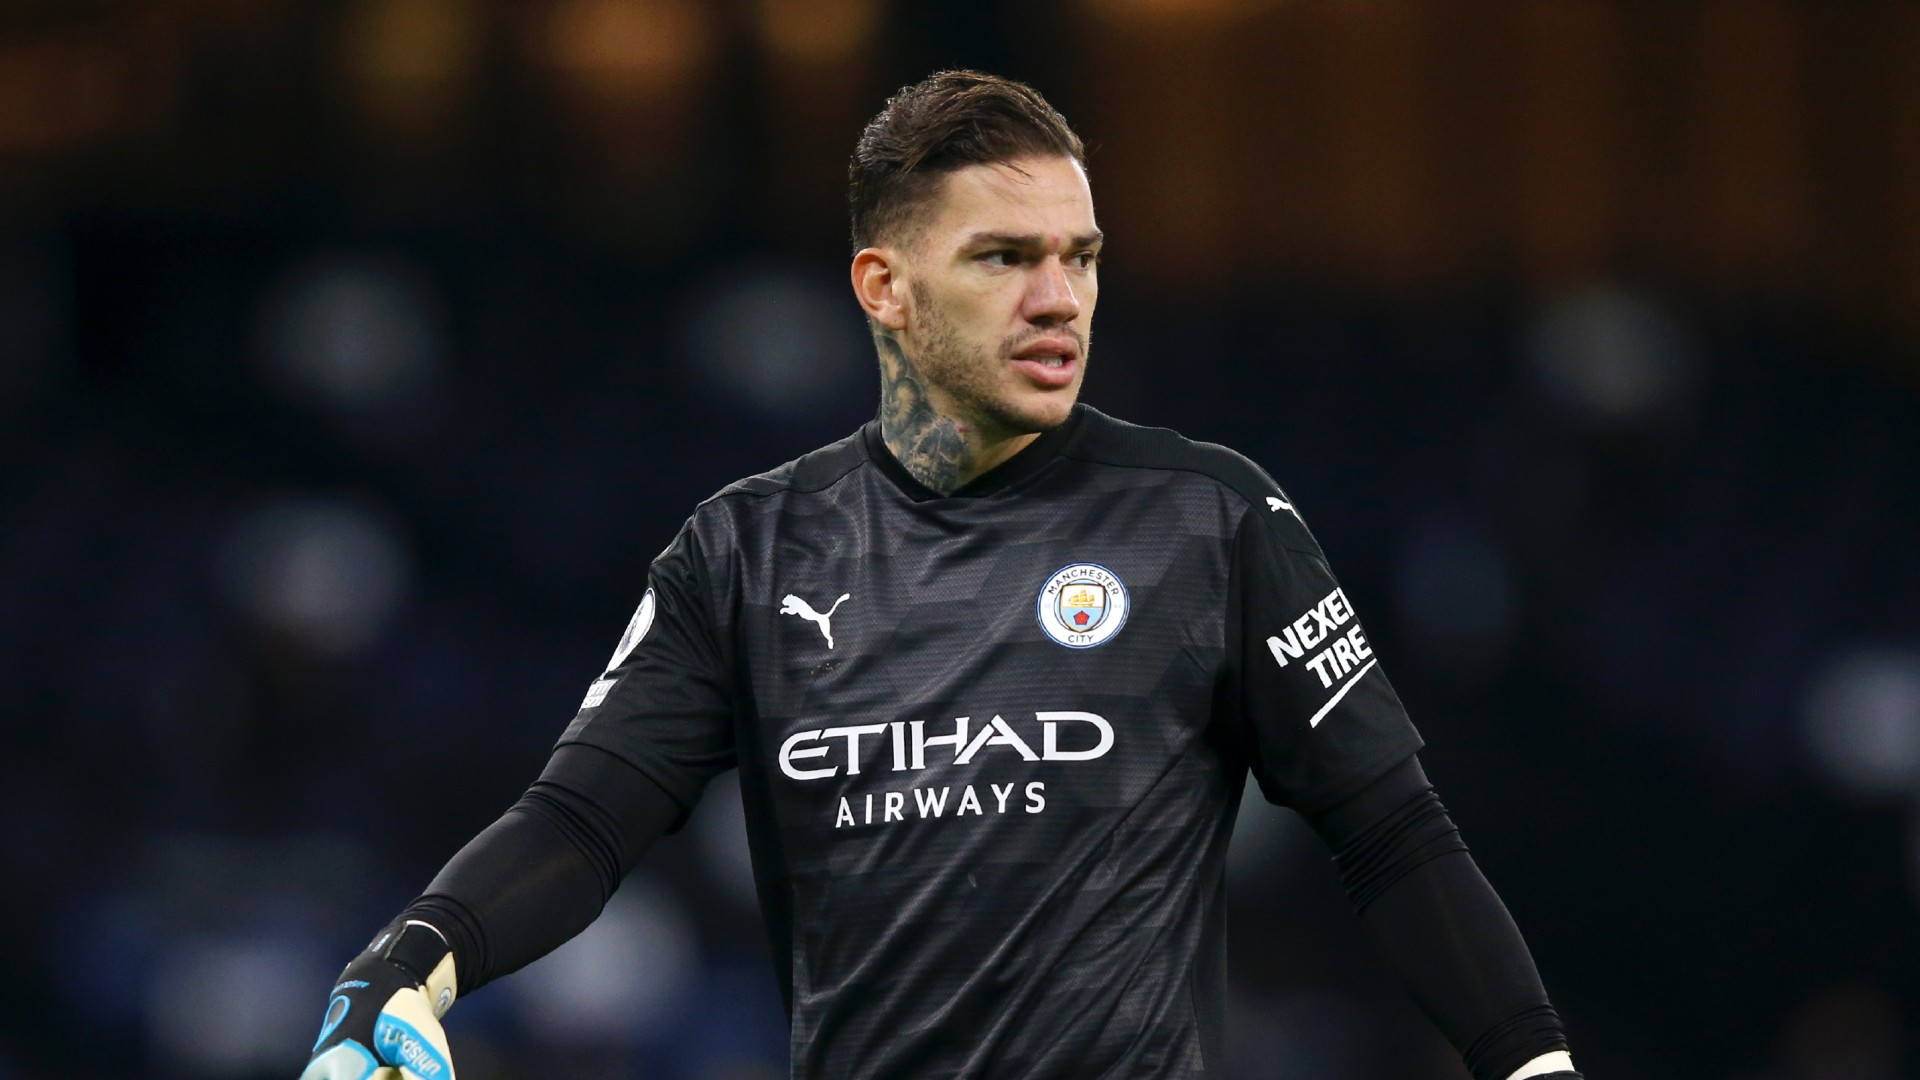 Guardiola: Ederson might be Manchester City's new penalty taker